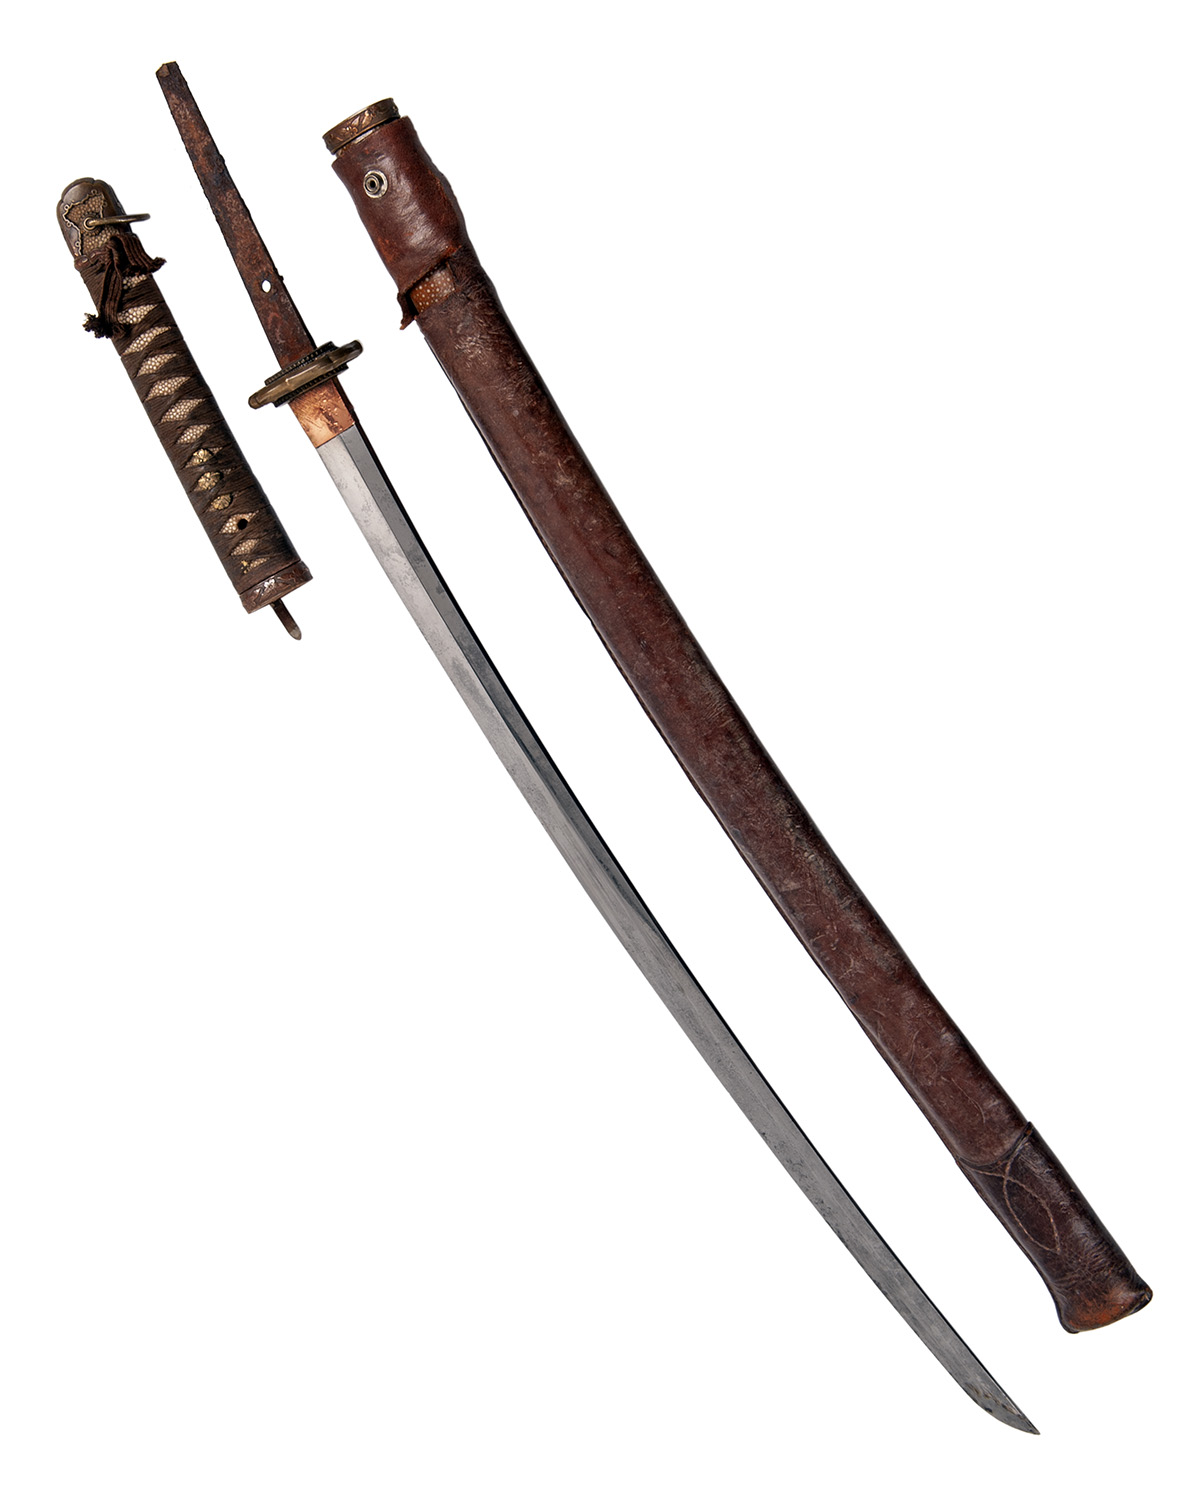 Lot 210 - A WORLD-WAR TWO KATANA WITH GENERAL OFFICER'S SHIN-GUNTO MOUNTS AND SIGNED BLADE, WITH RELEASE